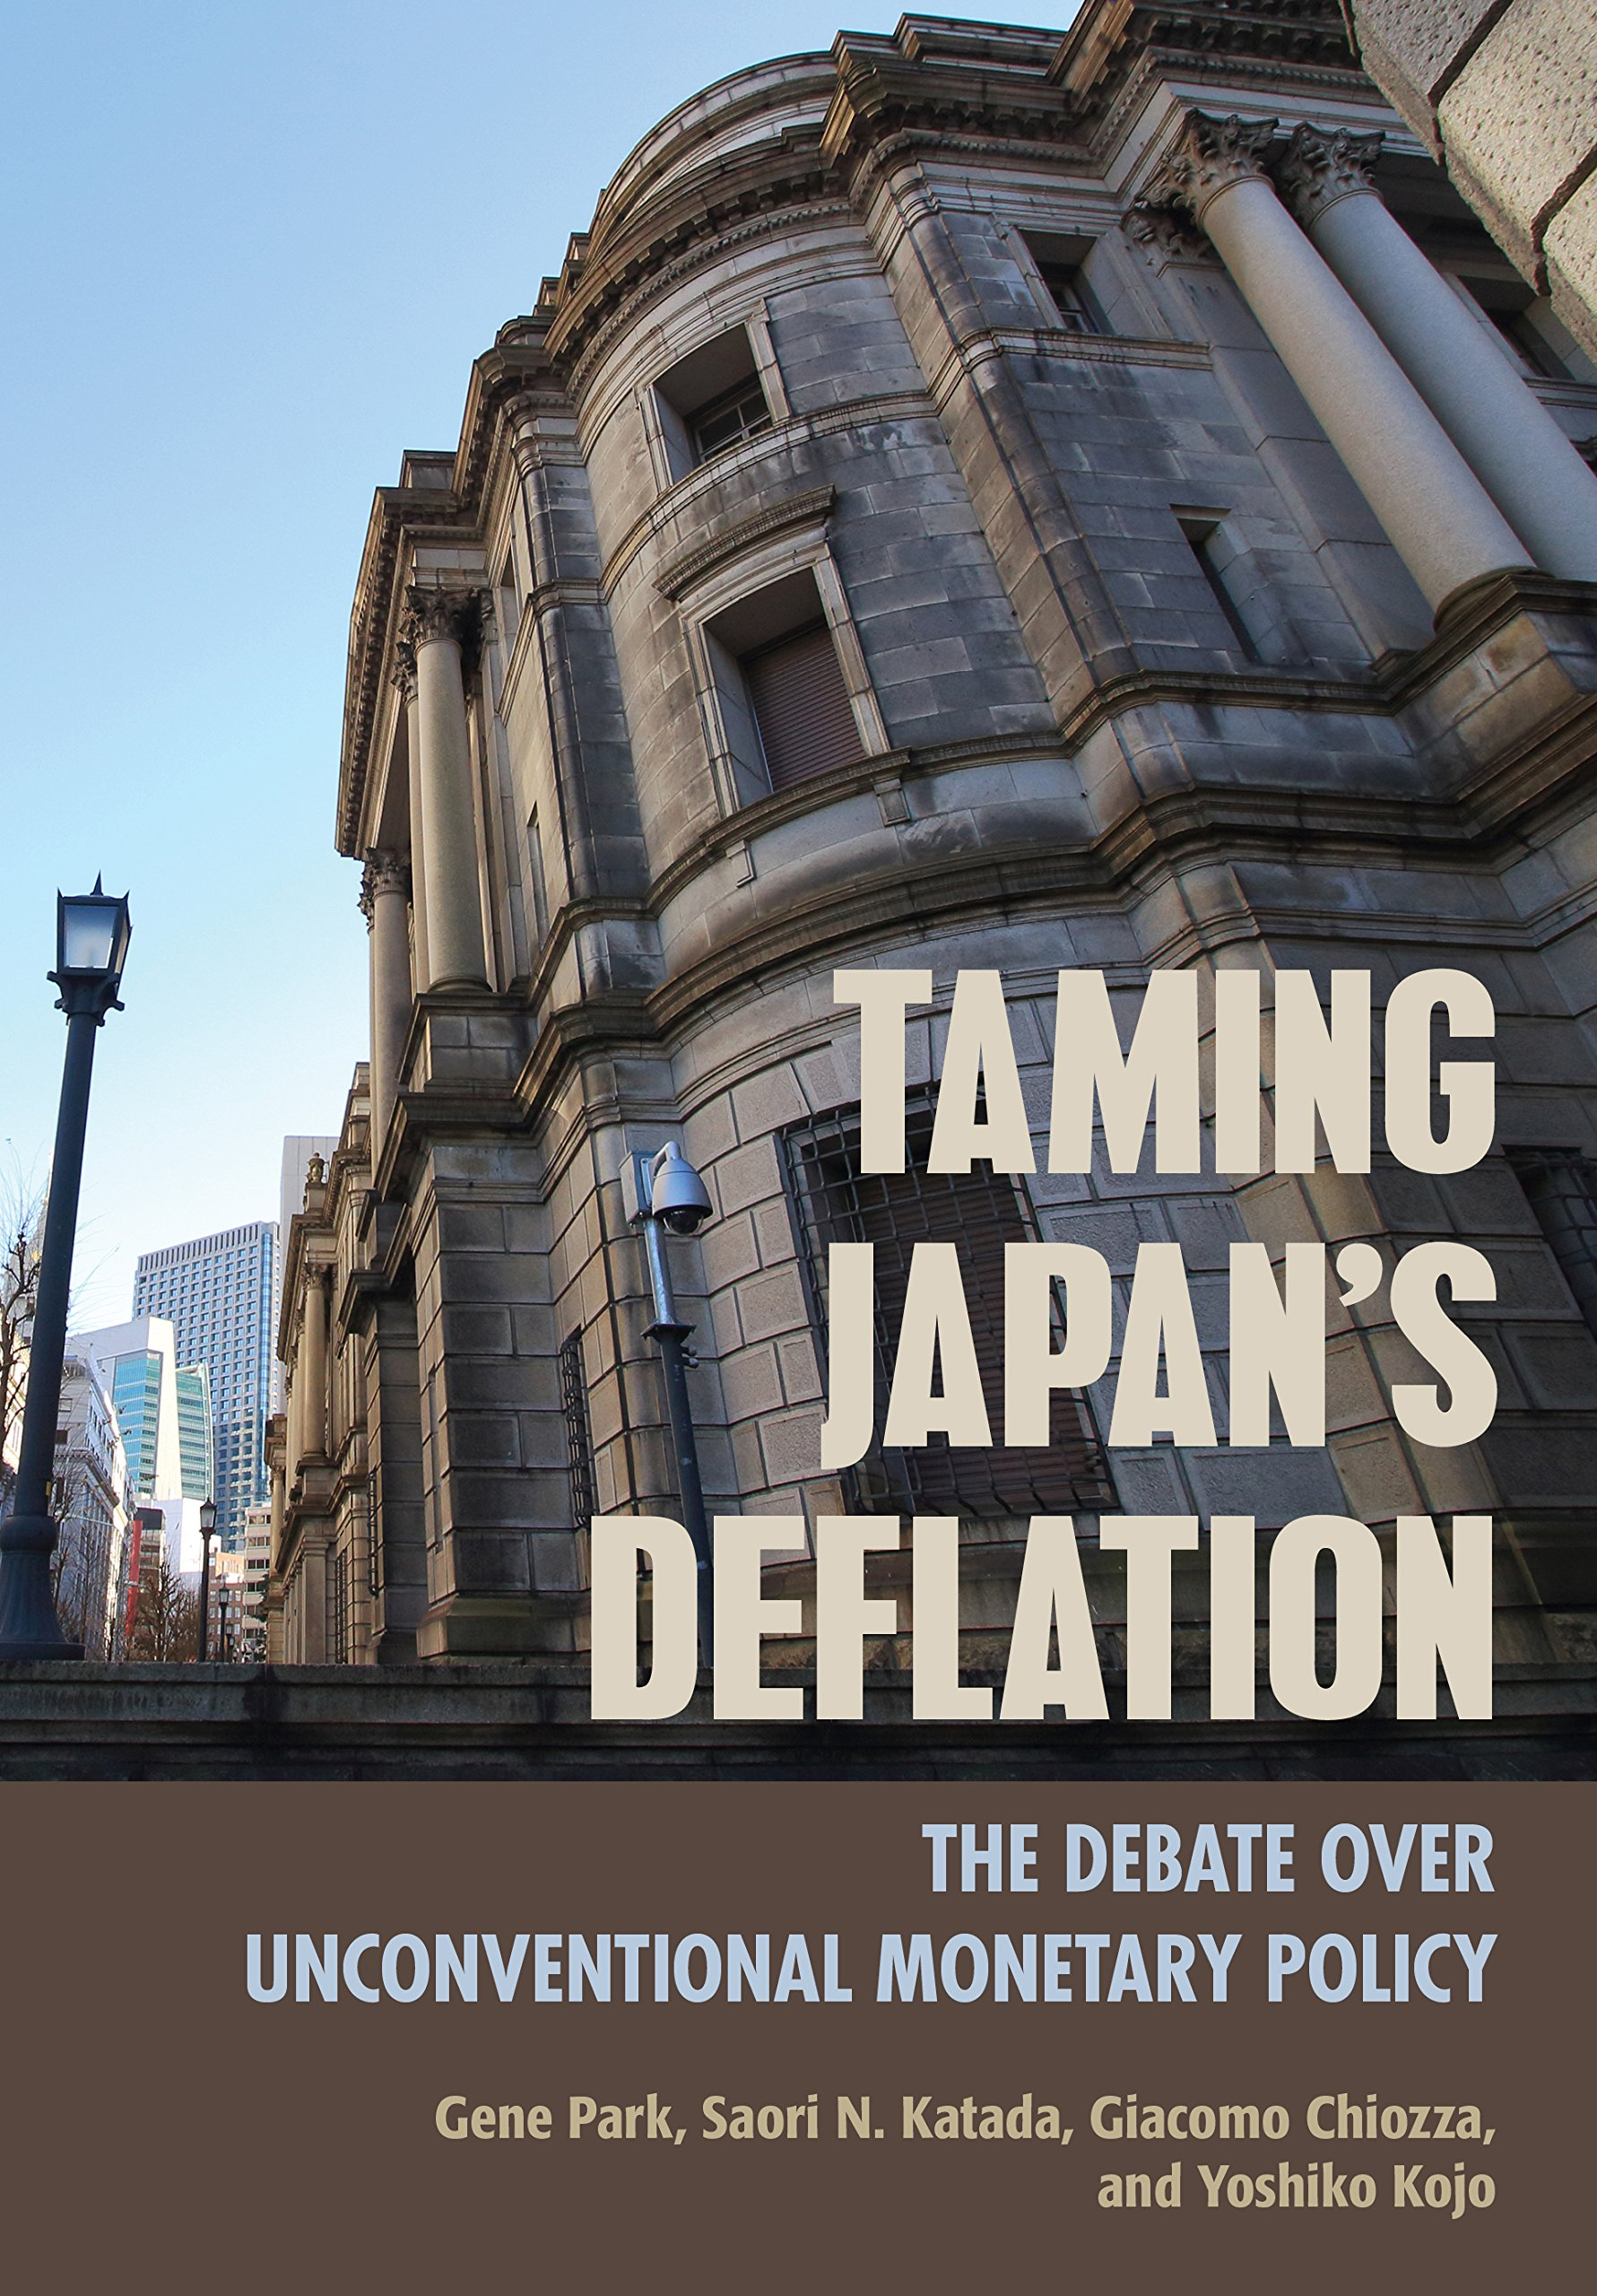 Taming Japan's Deflation: The Debate over Unconventional Monetary Policy (Cornell Studies in Money)